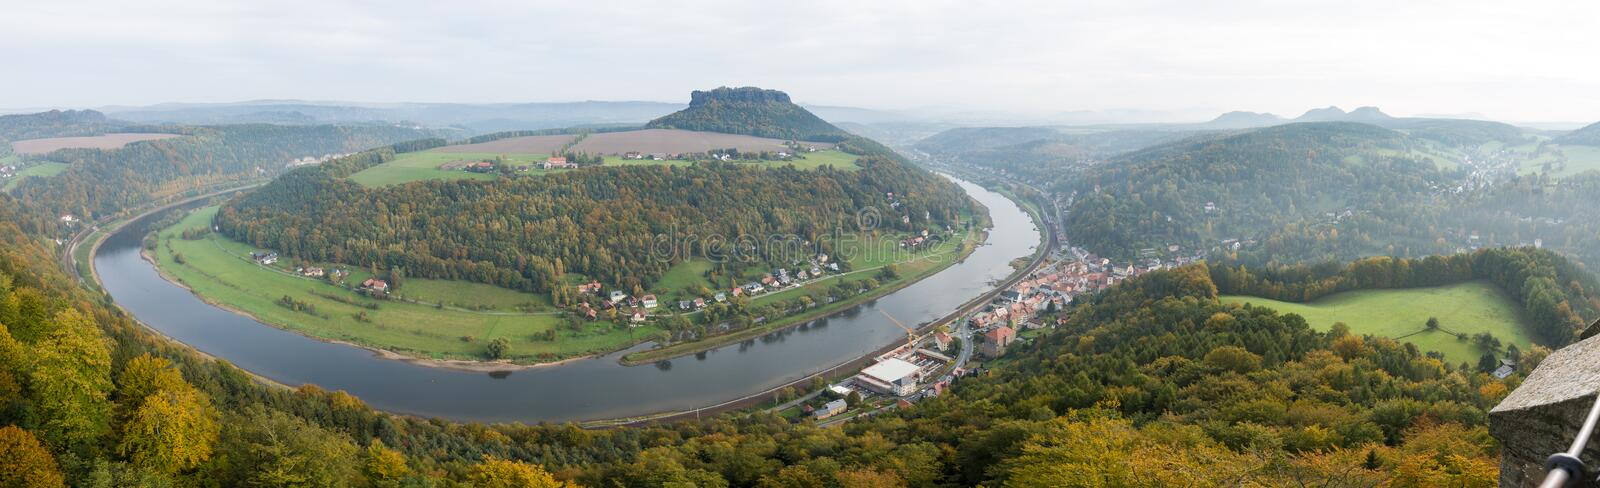 View from viewpoint of Bastei in Saxon Switzerland Germany to the town city and the river Elbe on a sunny day in autumn. View from viewpoint of Bastei in Saxon royalty free stock image